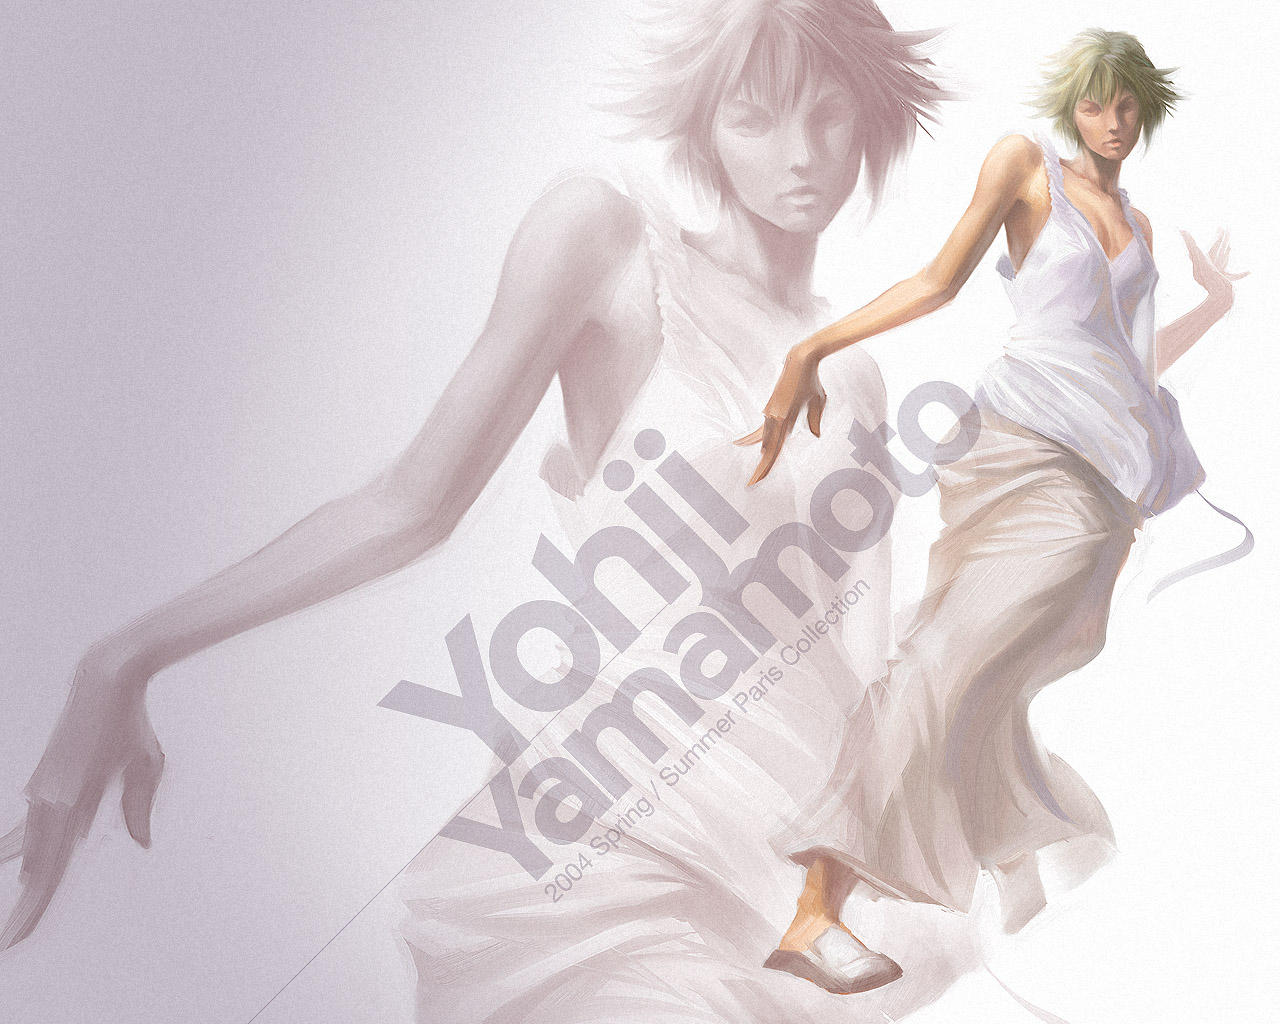 Yohji Dress by Artgerm